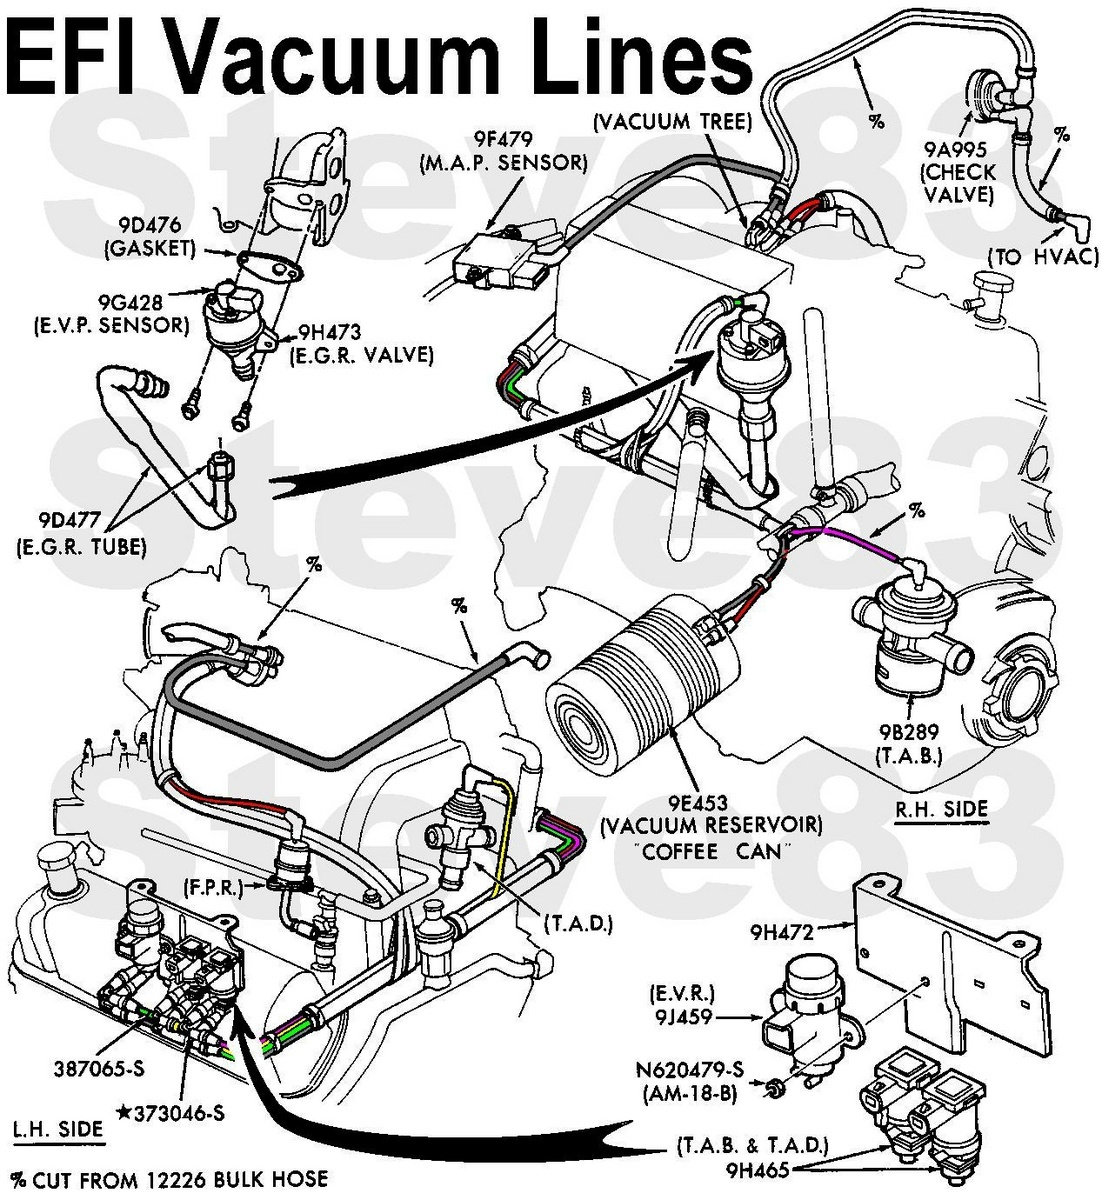 2000 pontiac grand am wiring diagram fuel injectors pdf with 2004 F150 4 6 Sensor Diagram on Where Is The Battery Located On My New Jeep Grand Cherokee 2014 moreover 2004 F150 4 6 Sensor Diagram besides